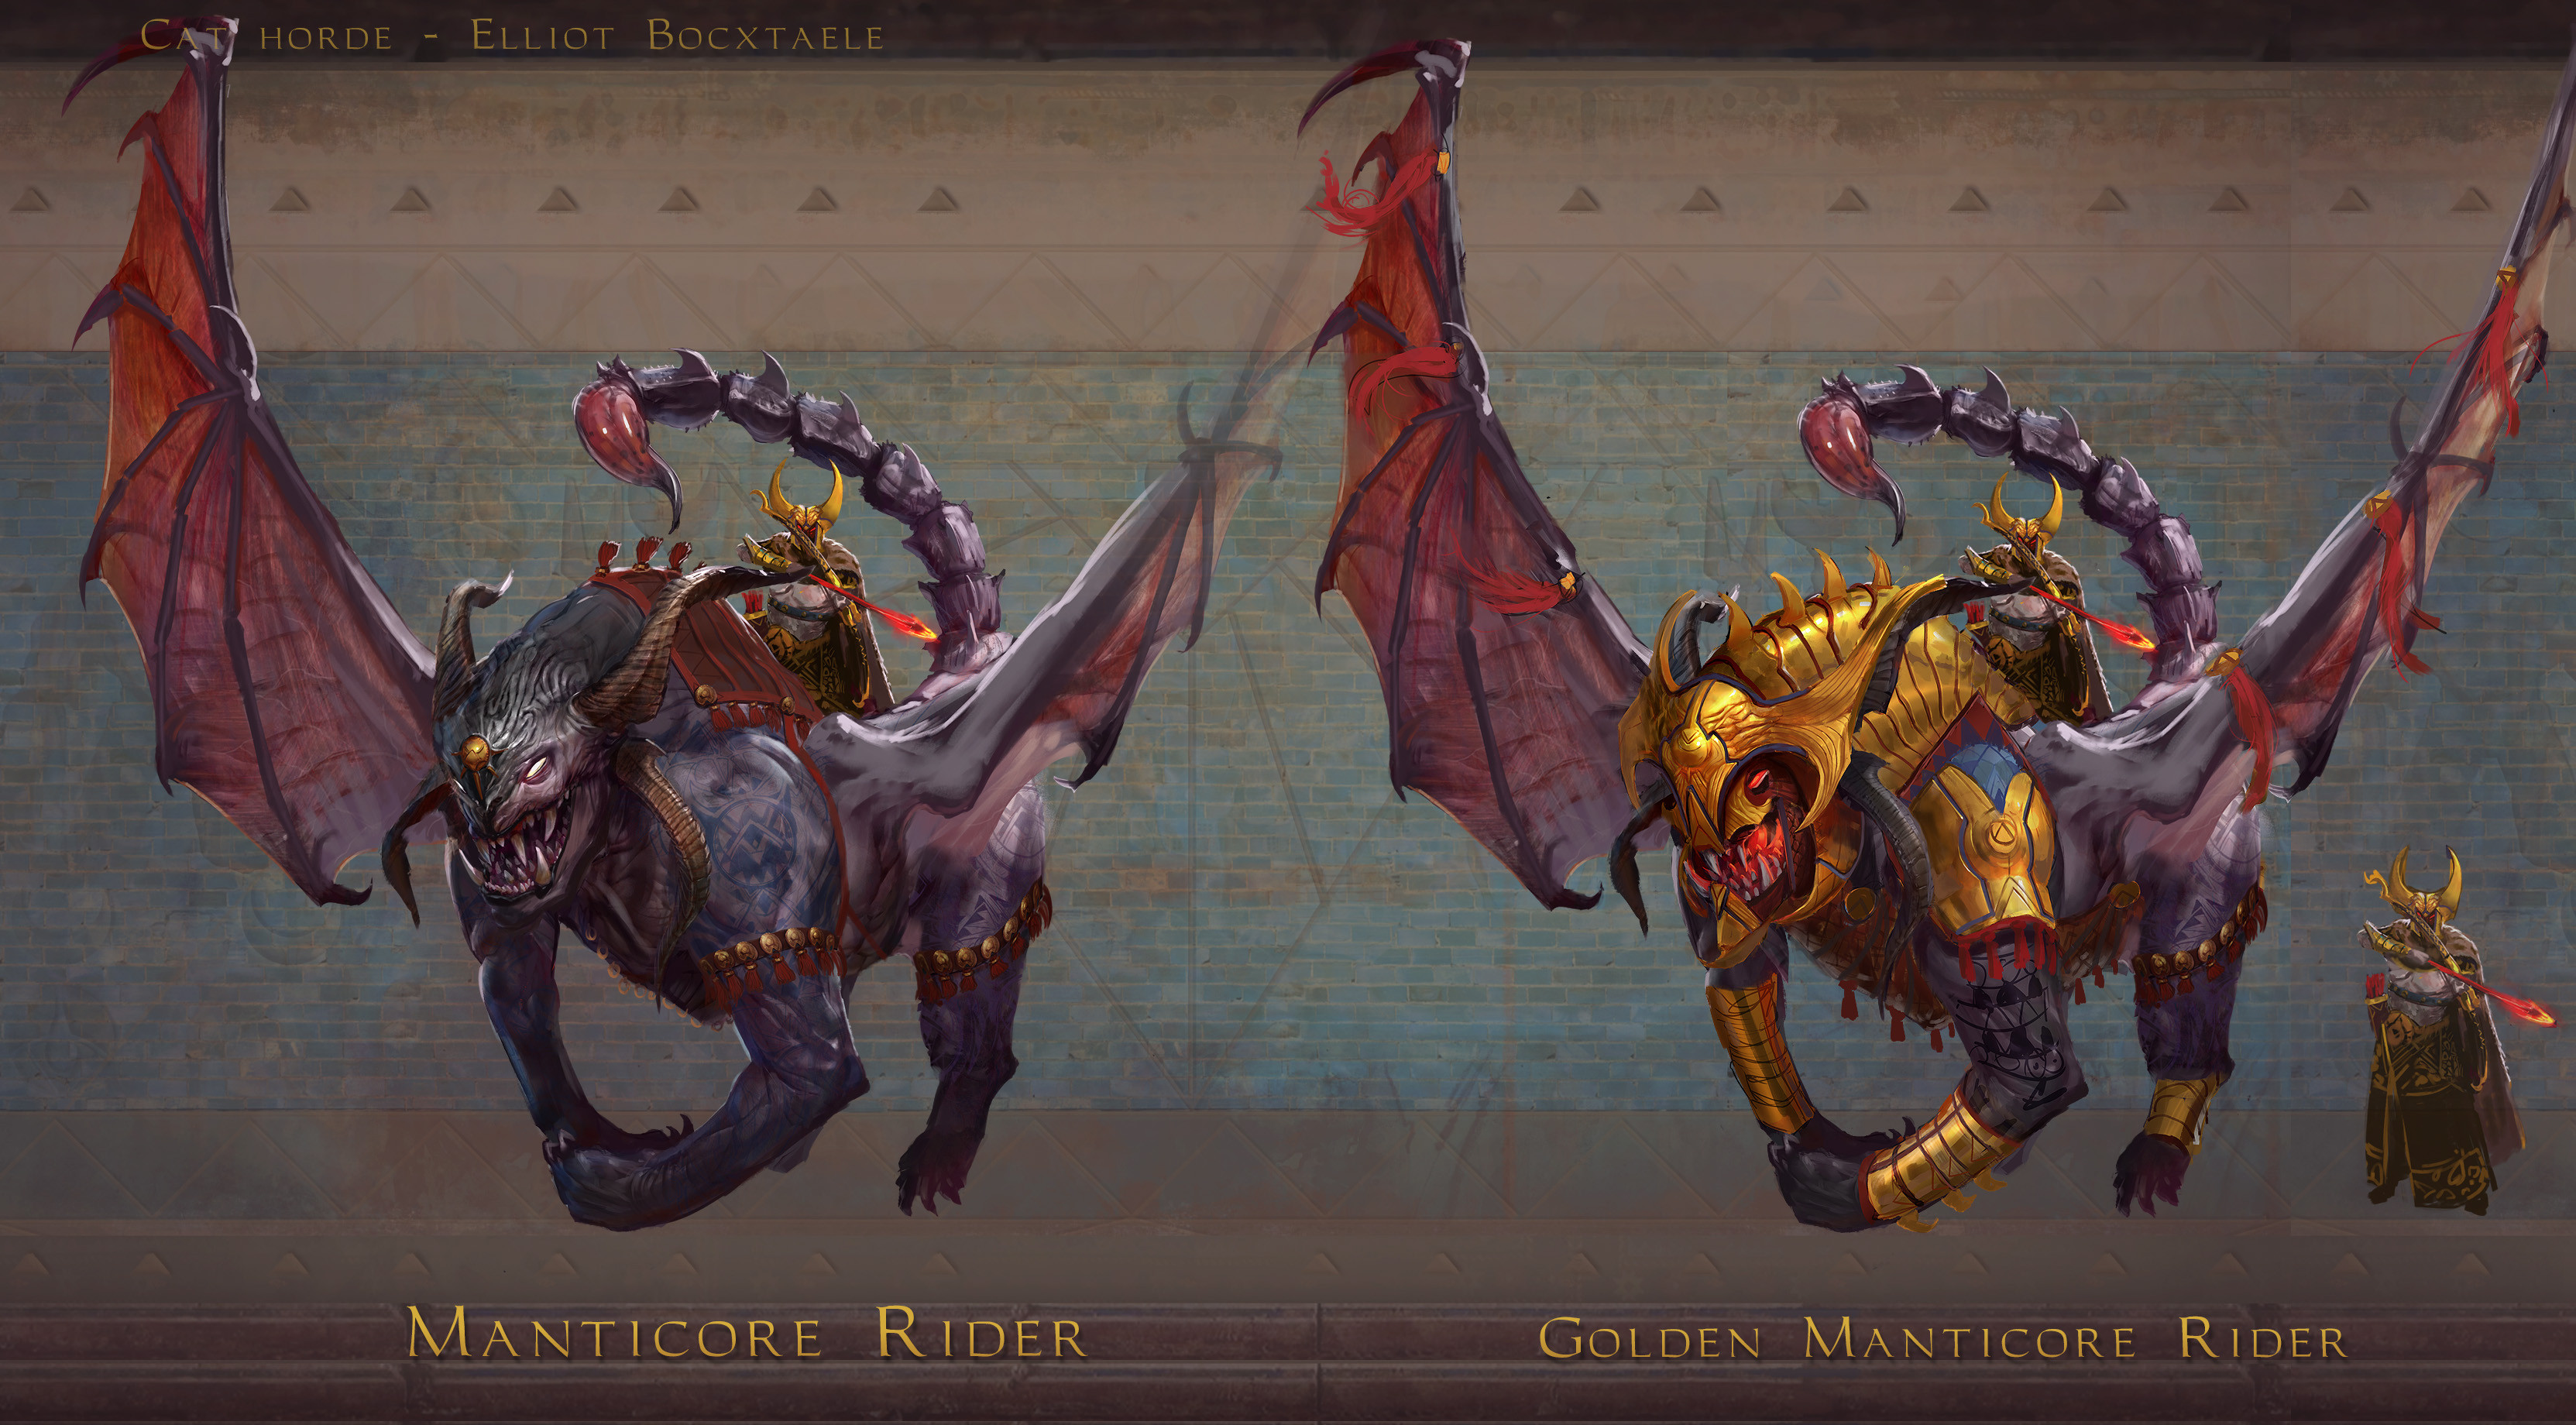 TIER 7 Manticore rider. The dreaded Manticores are formidable demon hybrids empowered by a blood bond. This bond is directly linked to their exceptional highborn riders. Able to maintain stability on these ferocious beasts, they shoot arrows, ...